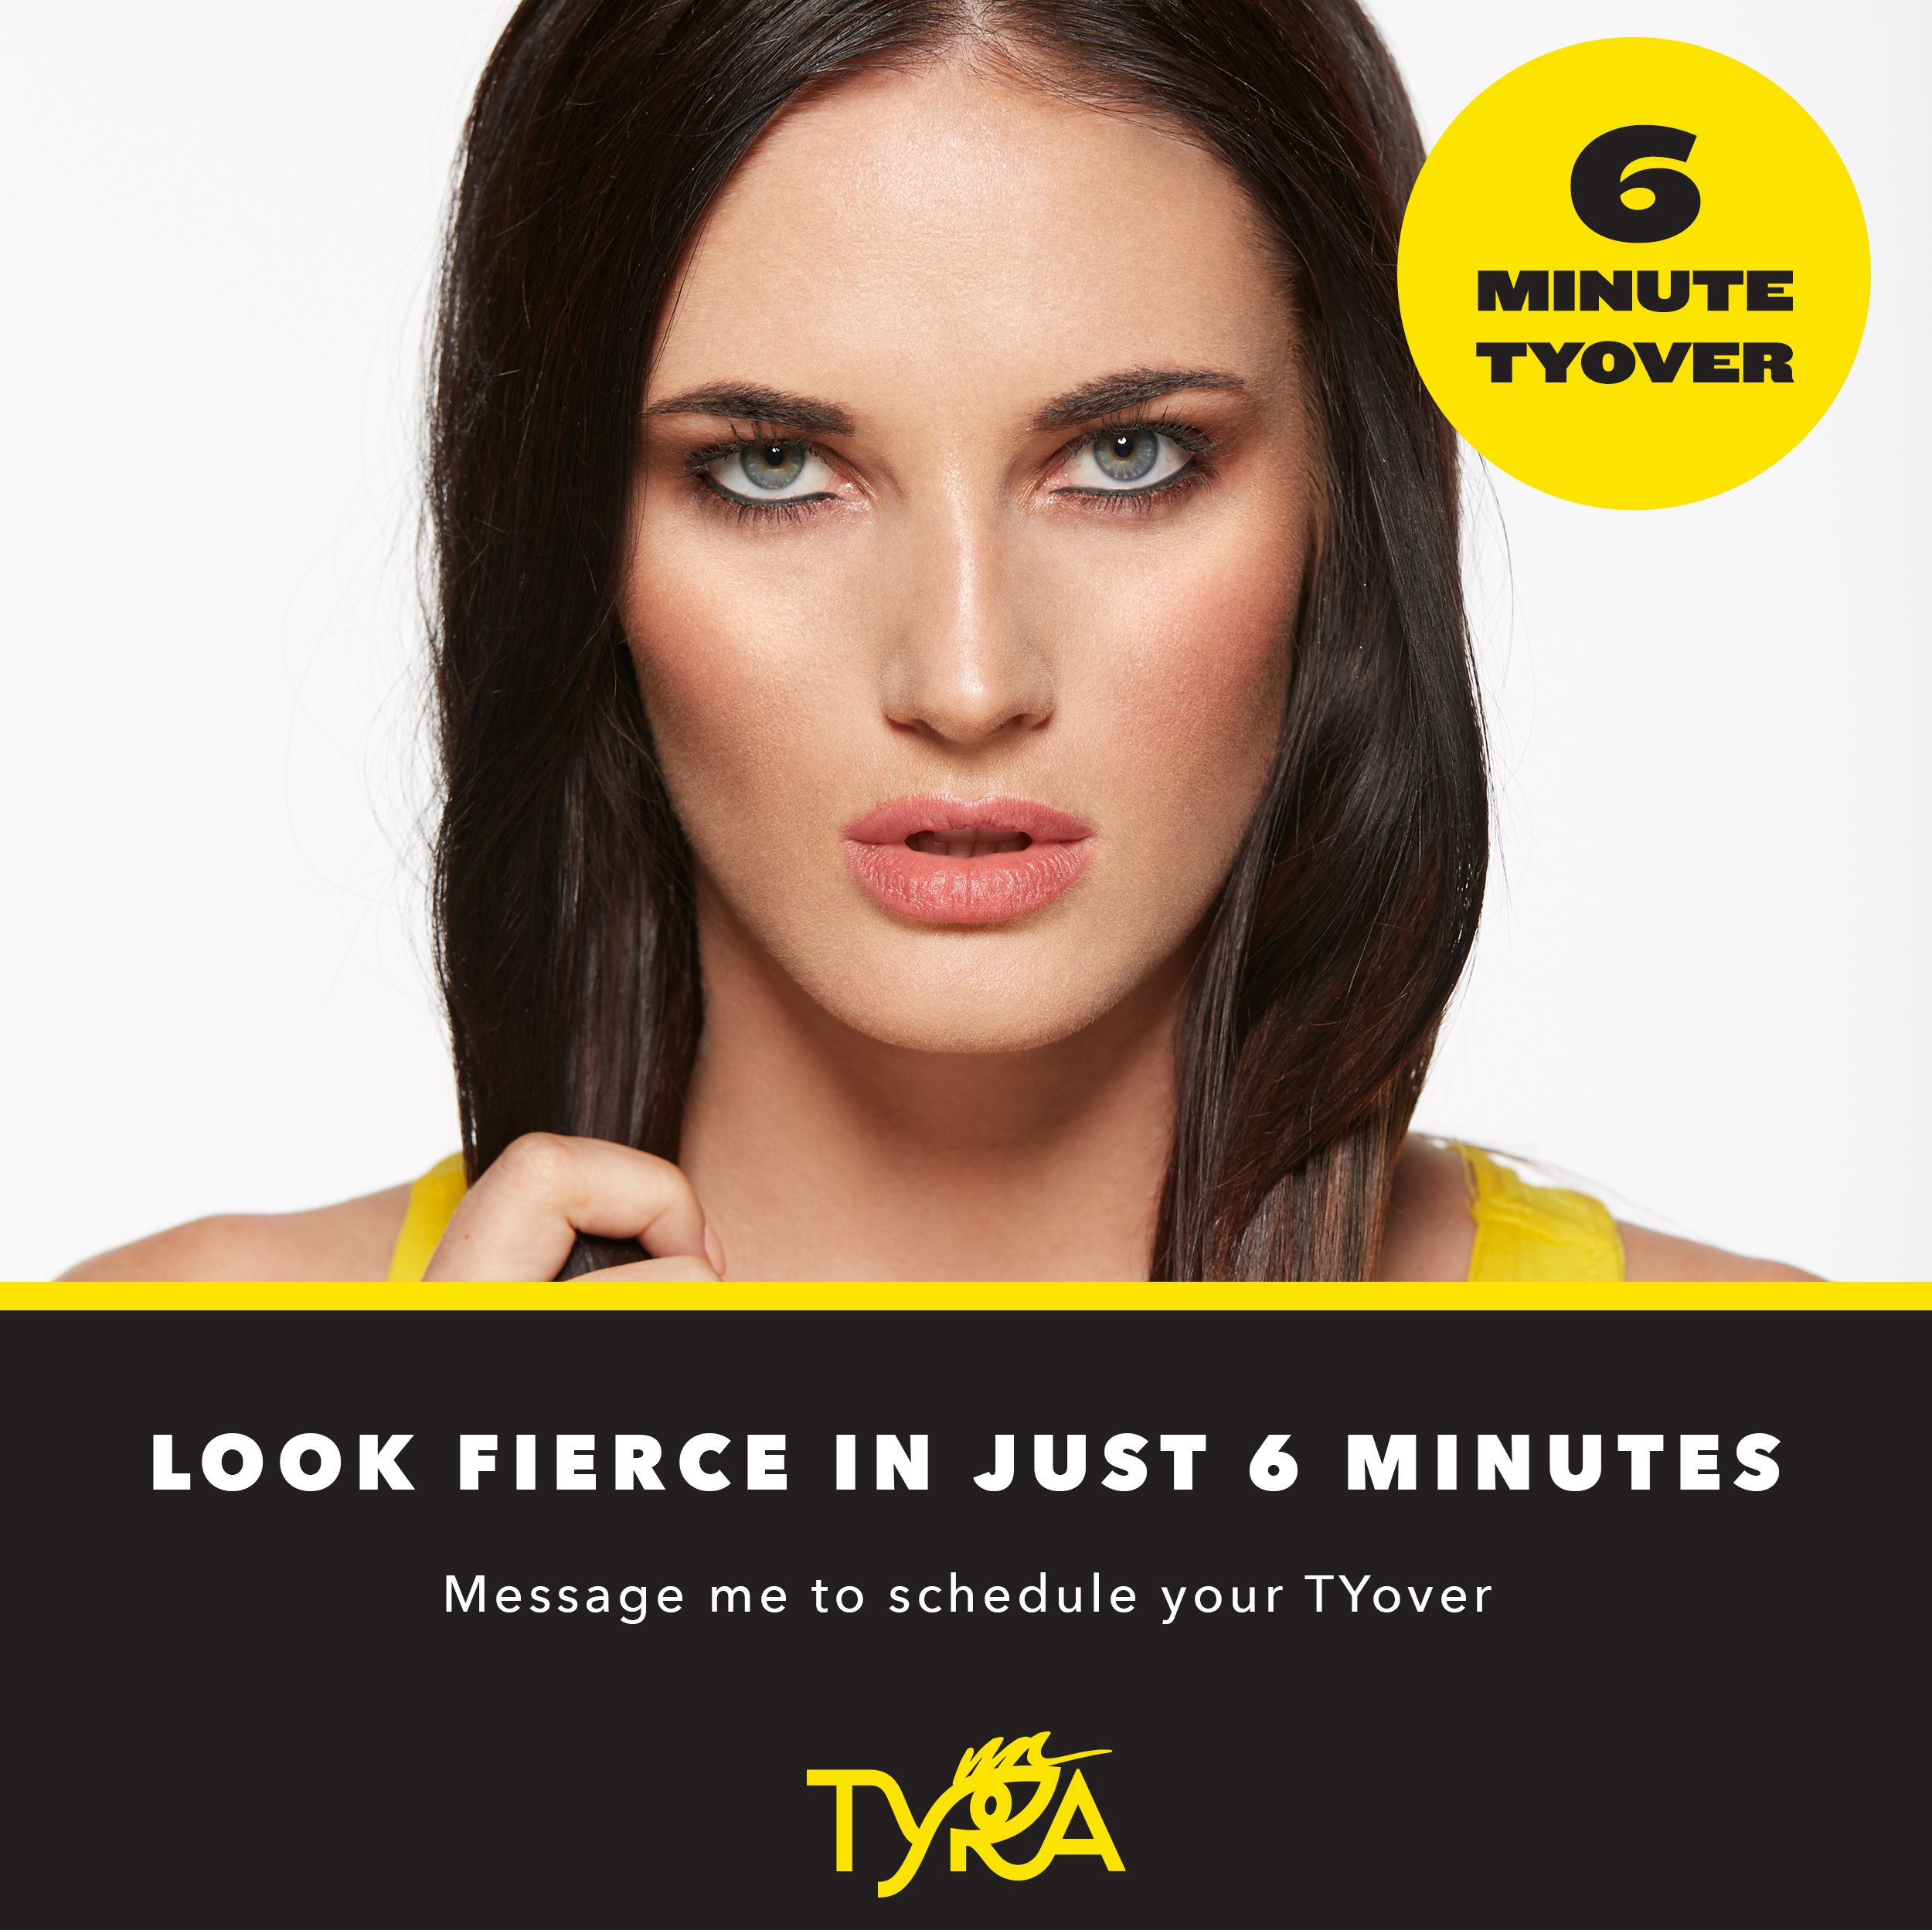 With Tyra Beauty, you don't have to be a professional